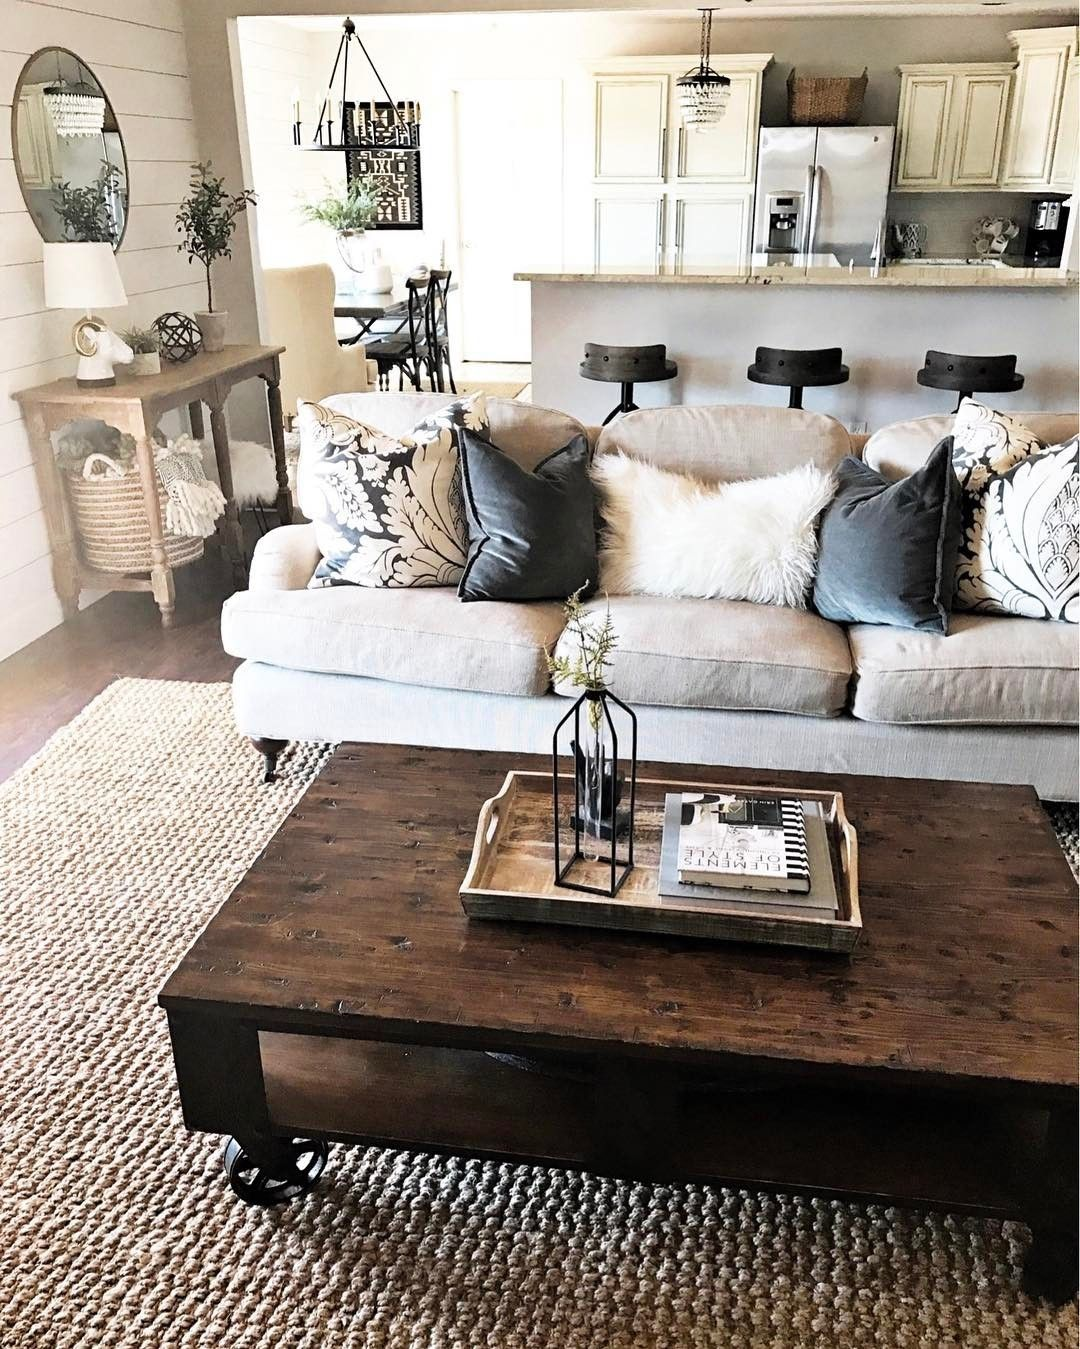 Rustic Decor Ideas for Modern Home | Living Room Ideas ...